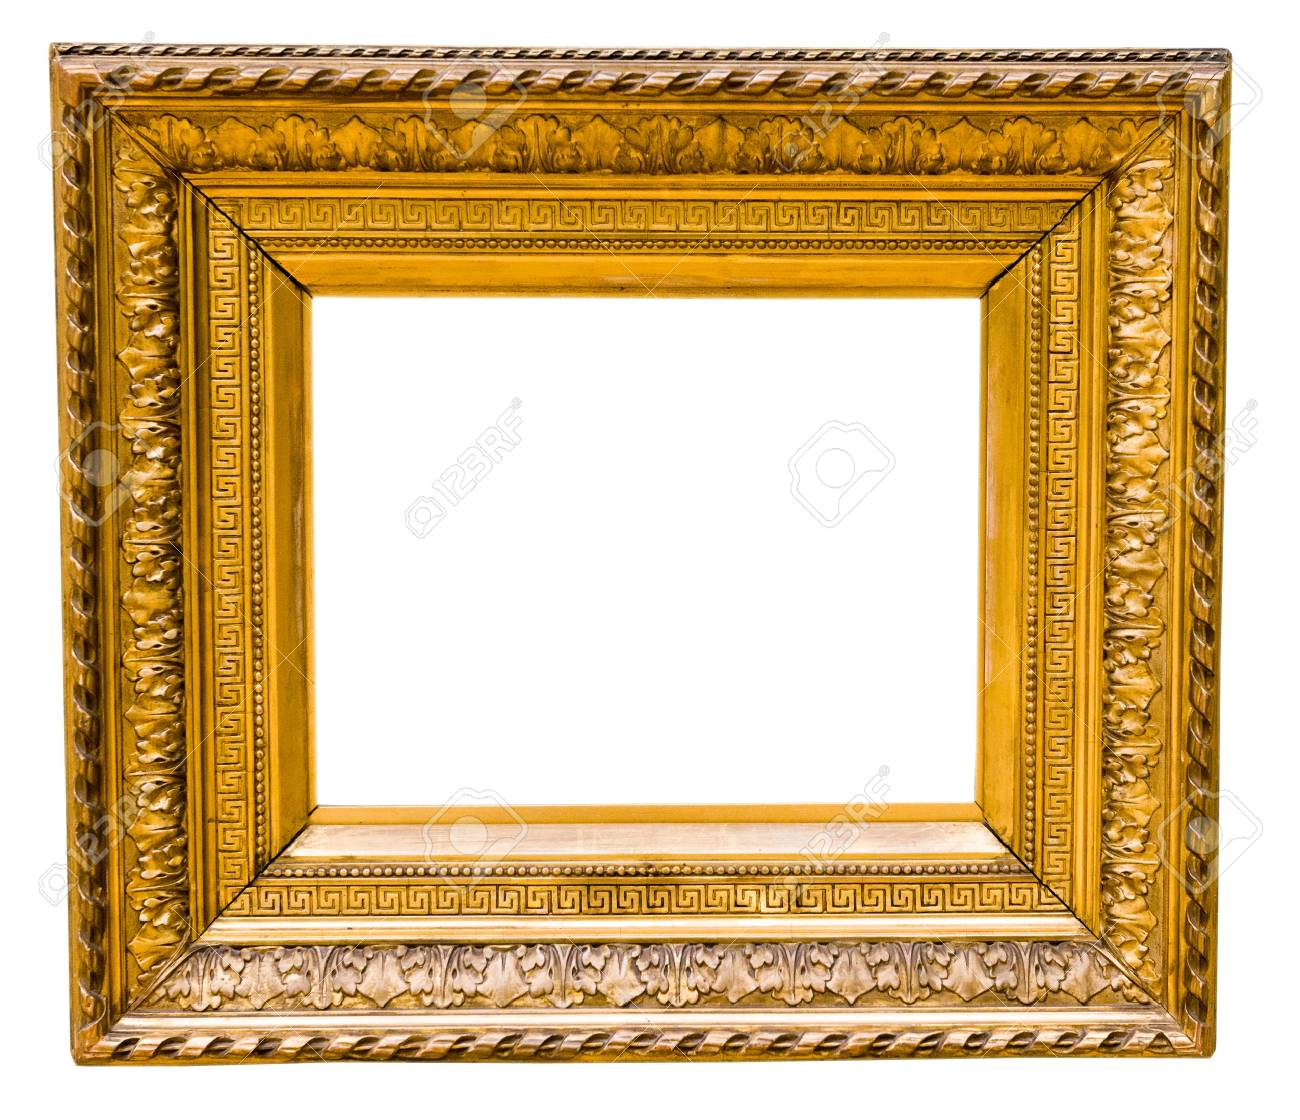 vintage gold frame, isolated on white Stock Photo - 16536582